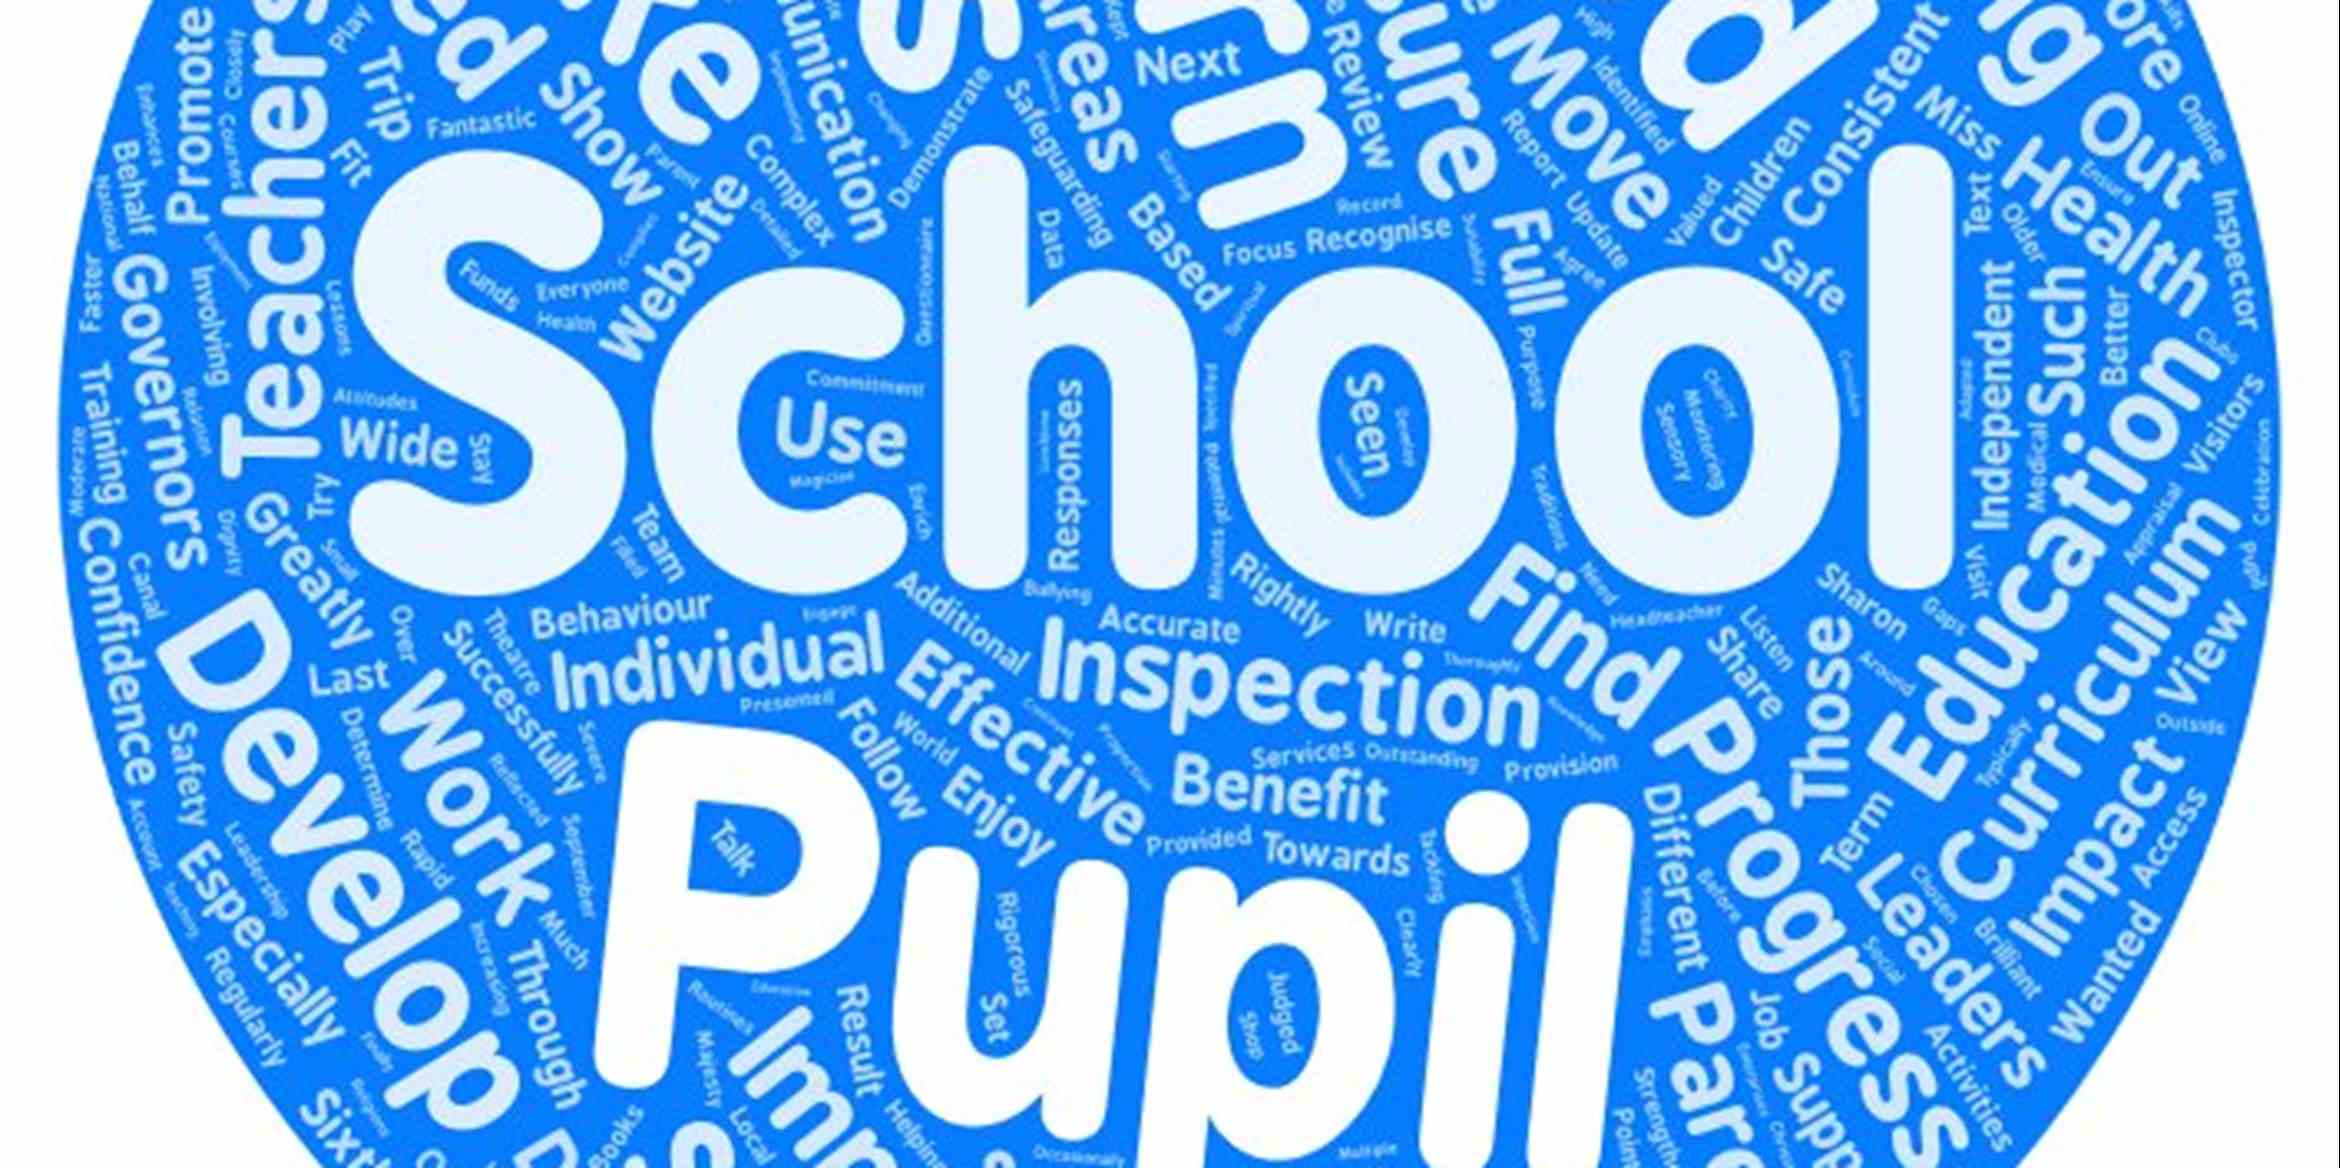 School Word Cloud.jpeg